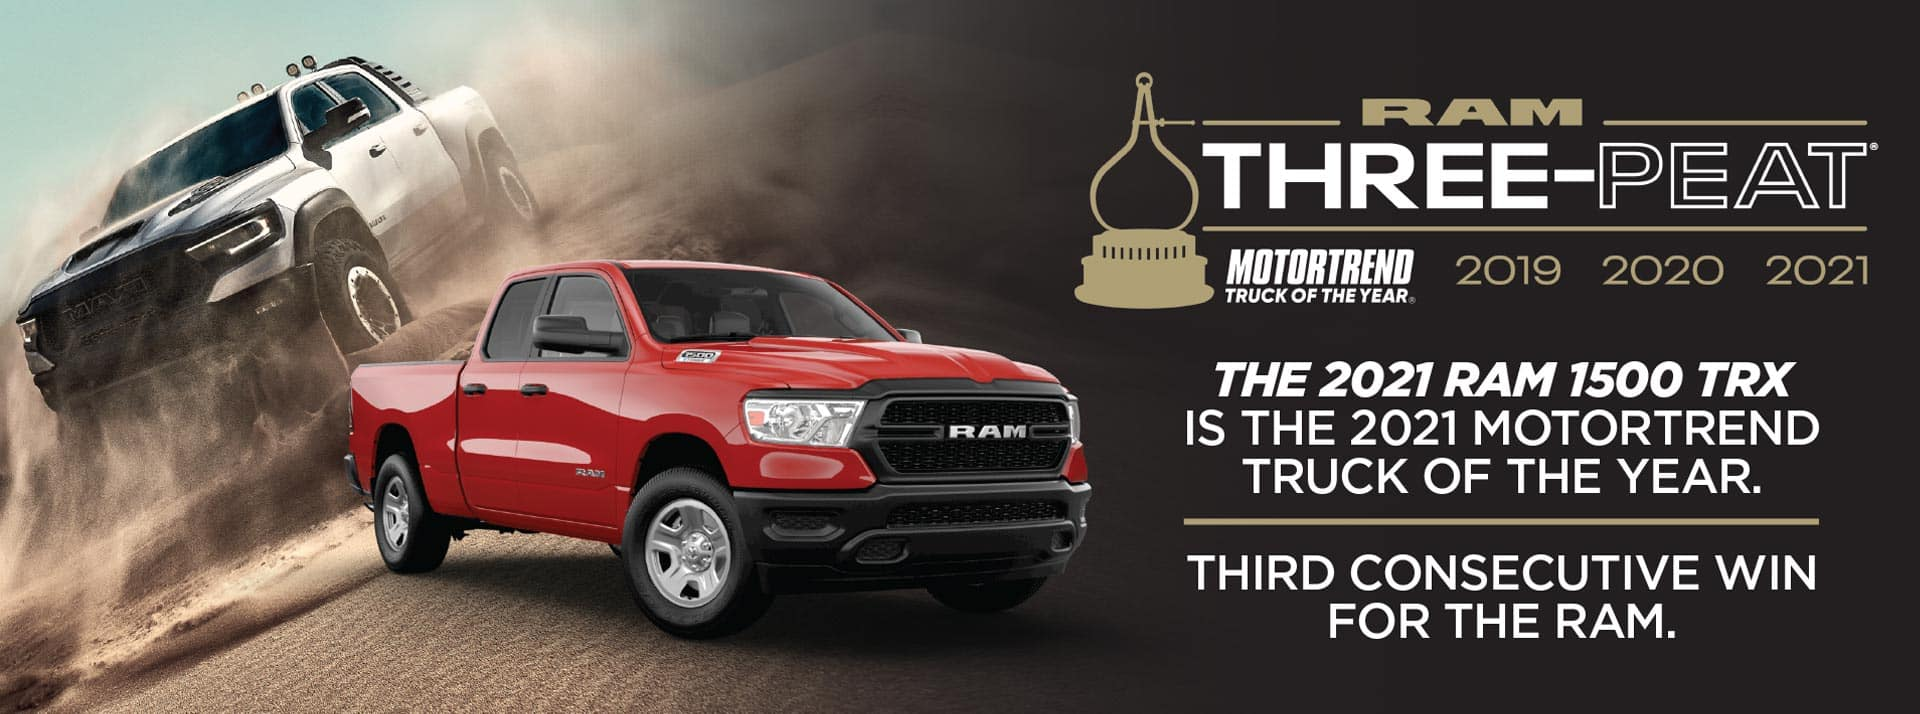 THE 2021 RAM 1500 TRX IS THE 2021 MOTORTREND TRUCK OF THE YEAR.